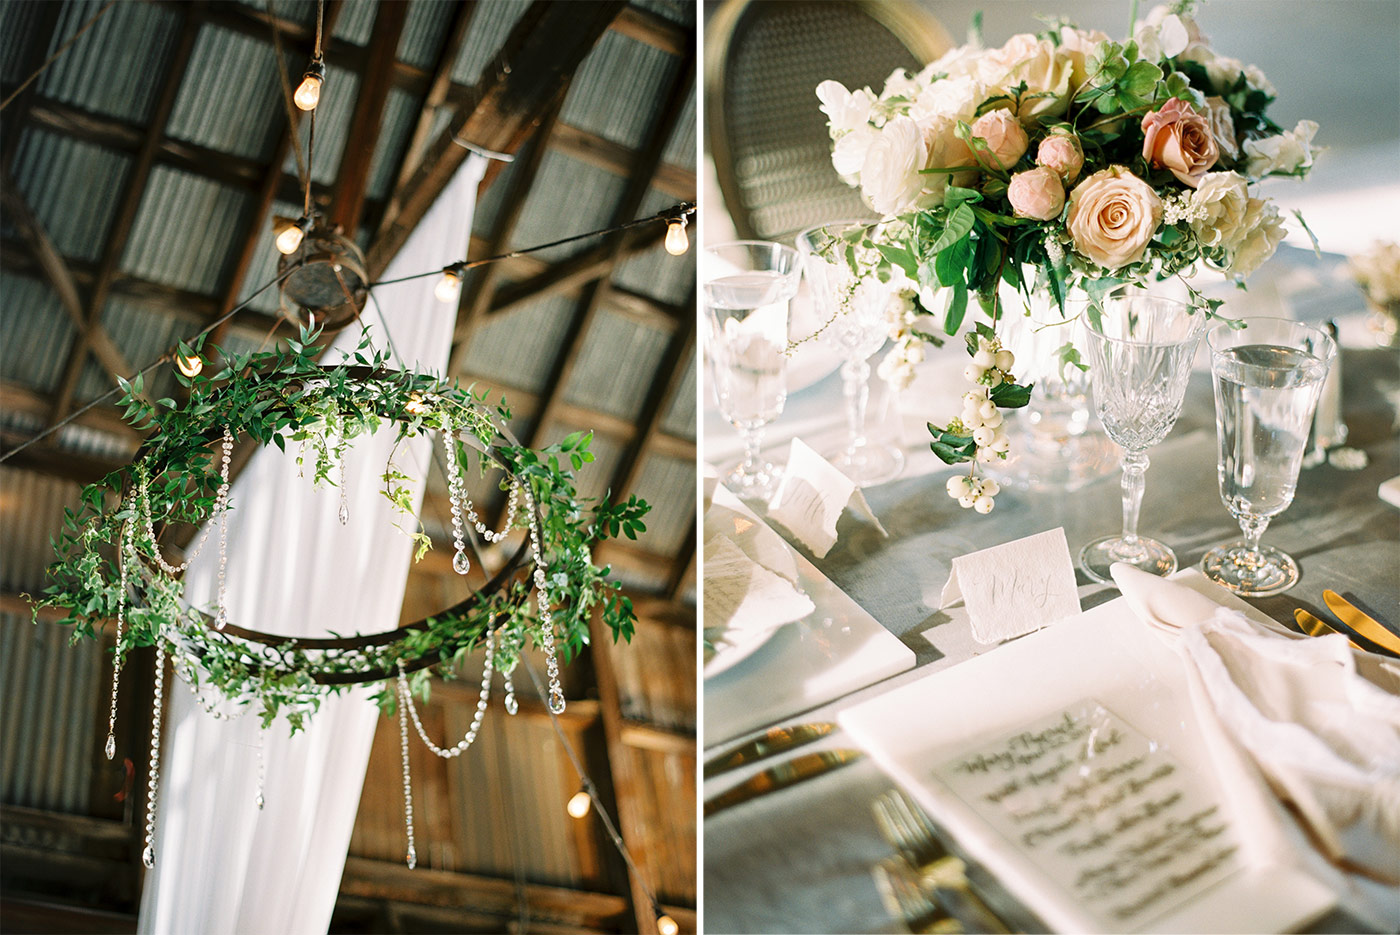 Santa Margarita Ranch Wedding Designed by Danae Grace Events, Florals by Noonan's Wine Country Designs and Photographed by Ashley Ludaescher Photography